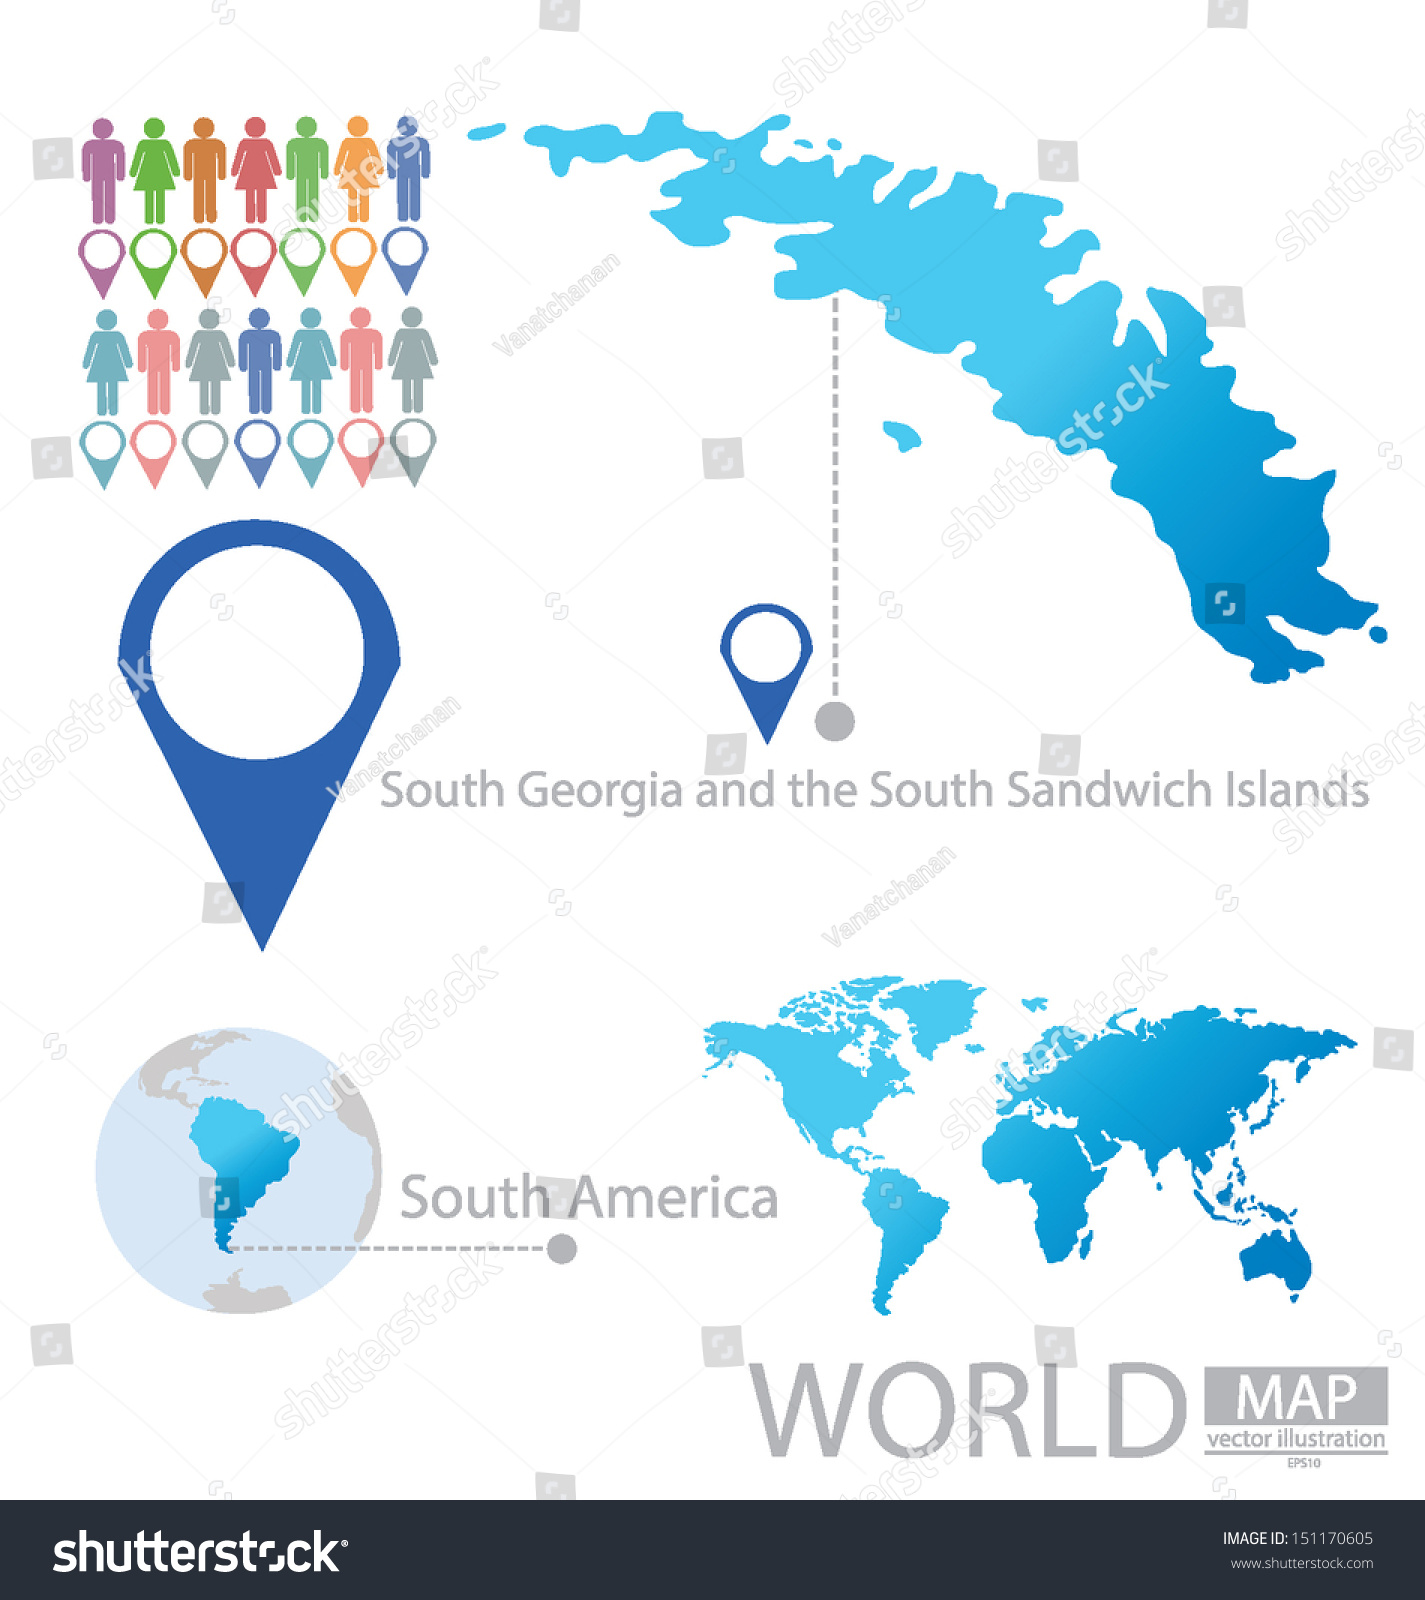 South georgia south sandwich islands south vectores en stock south georgia and the south sandwich islands south america world map vector illustration gumiabroncs Image collections